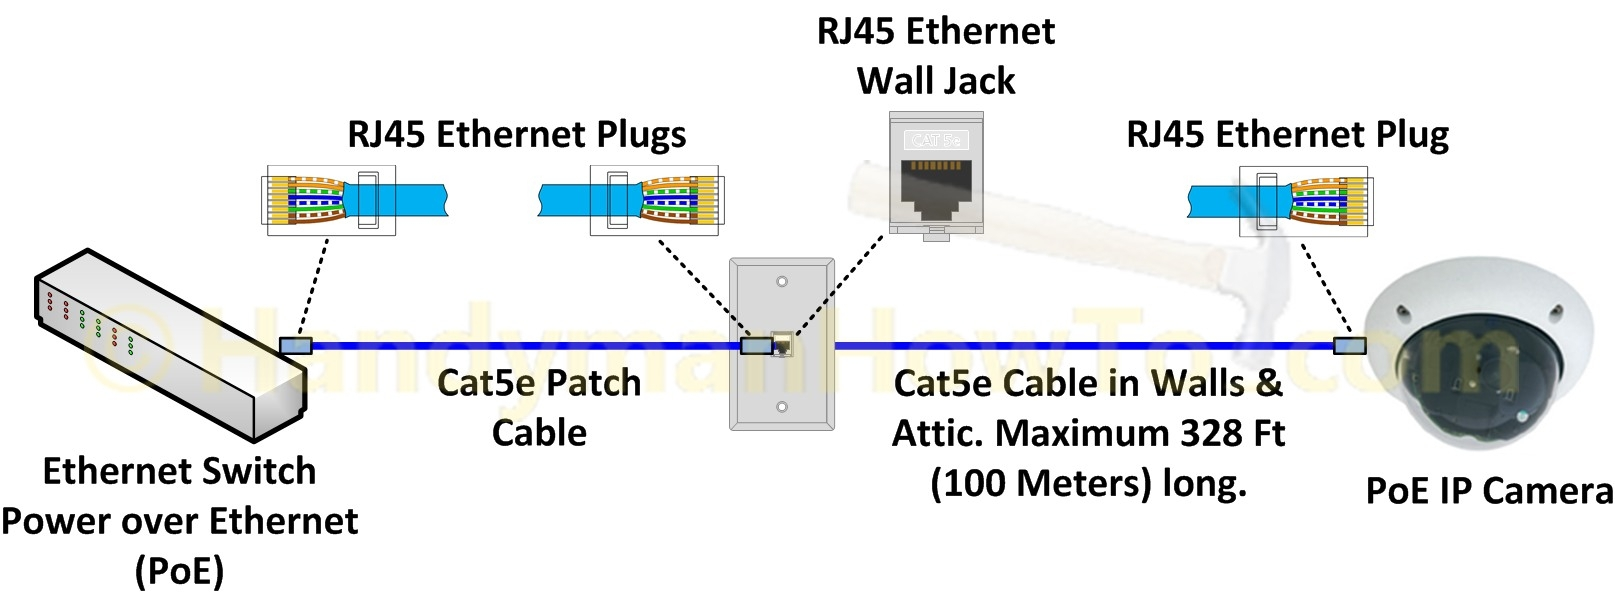 cat6 faceplate wiring diagram Collection-cat6 faceplate wiring diagram Download Cat6 Wiring Diagram Inspirational 568b Ethernet Cable Wiring Diagram 1 2-e